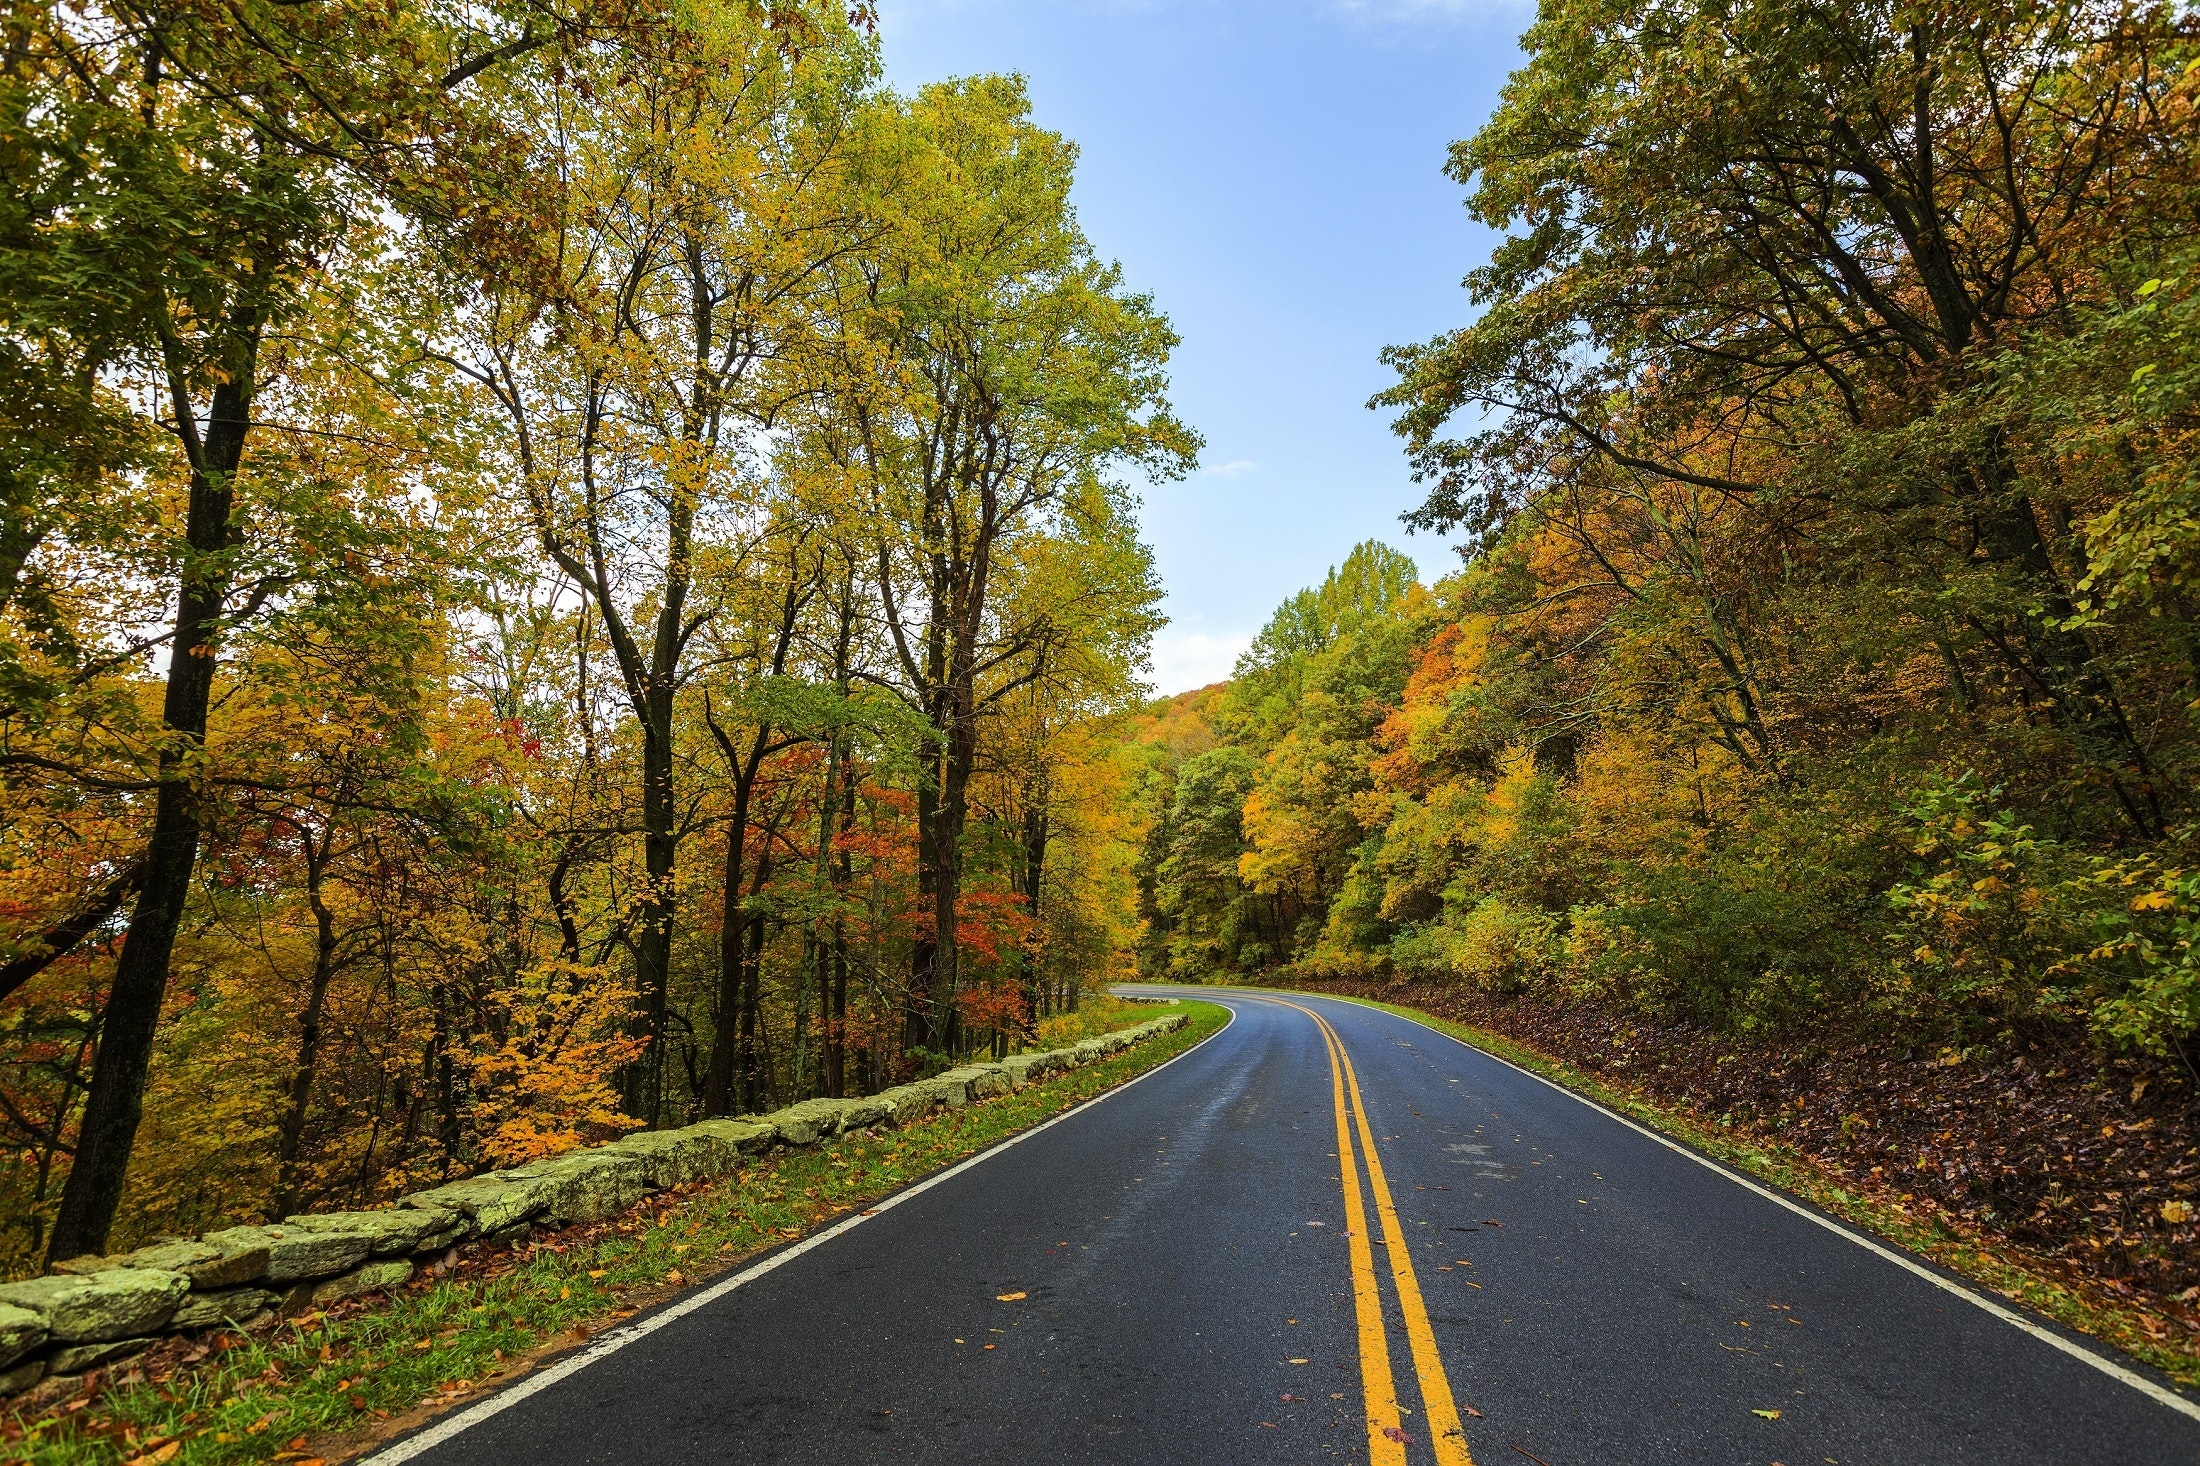 photo of a winding road surrounded by trees in the fall